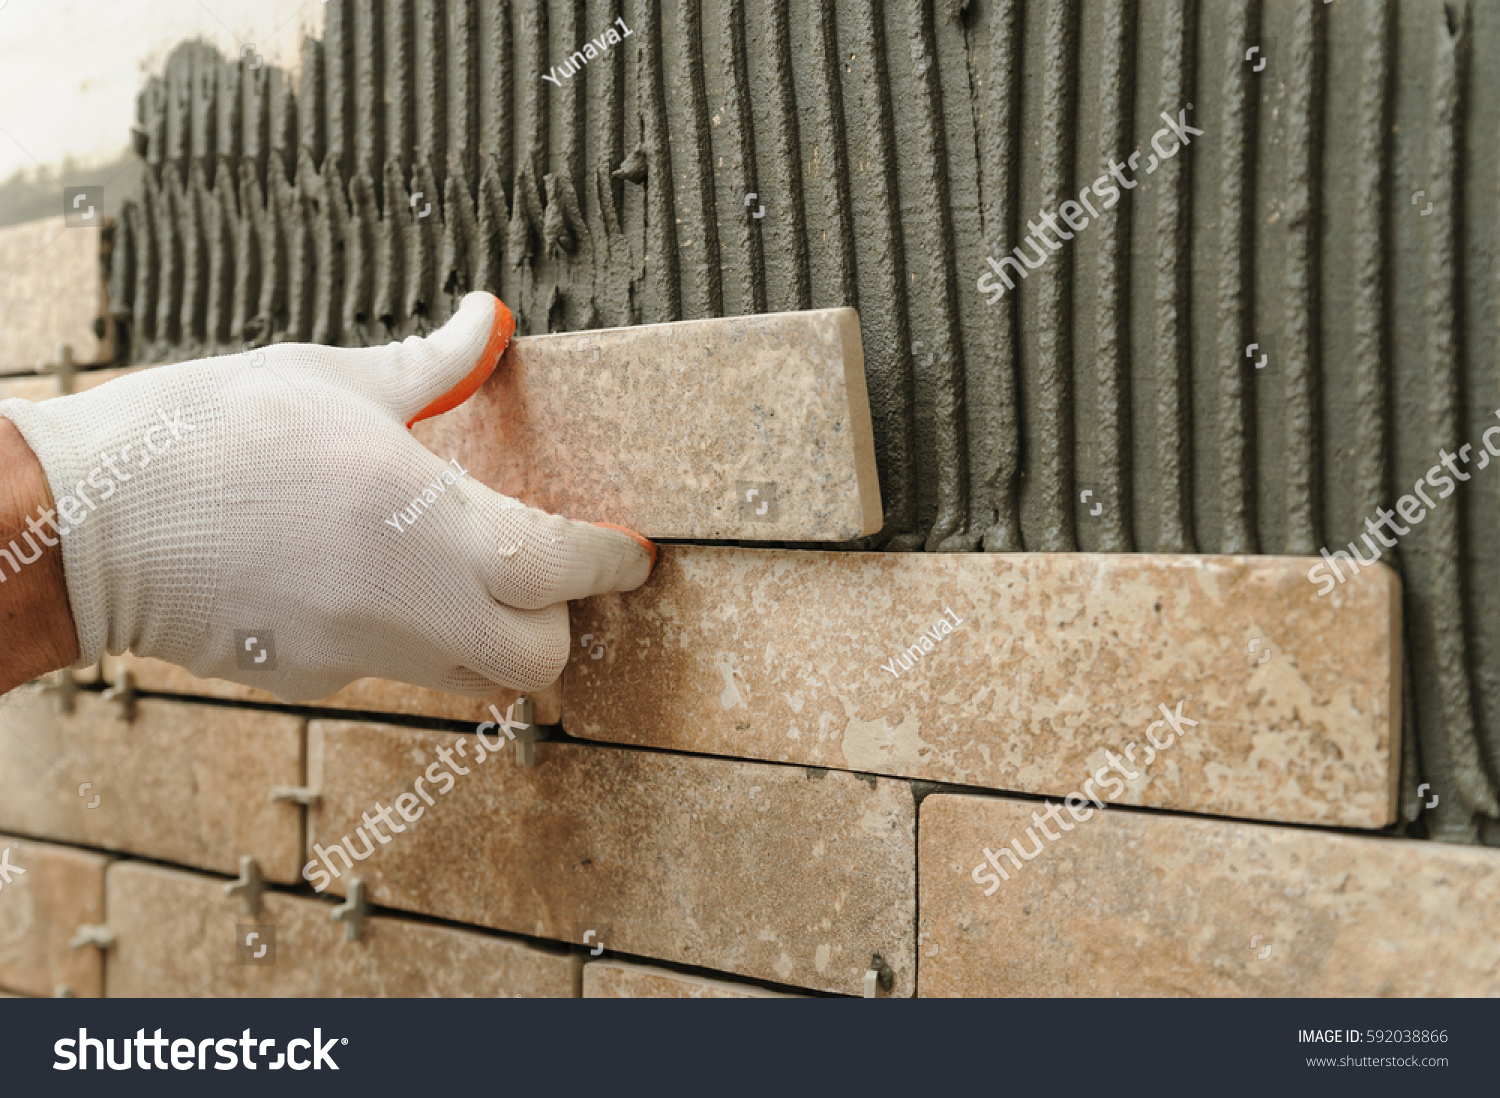 Installing Tiles On Wall Worker Putting Stock Photo (Download Now ...